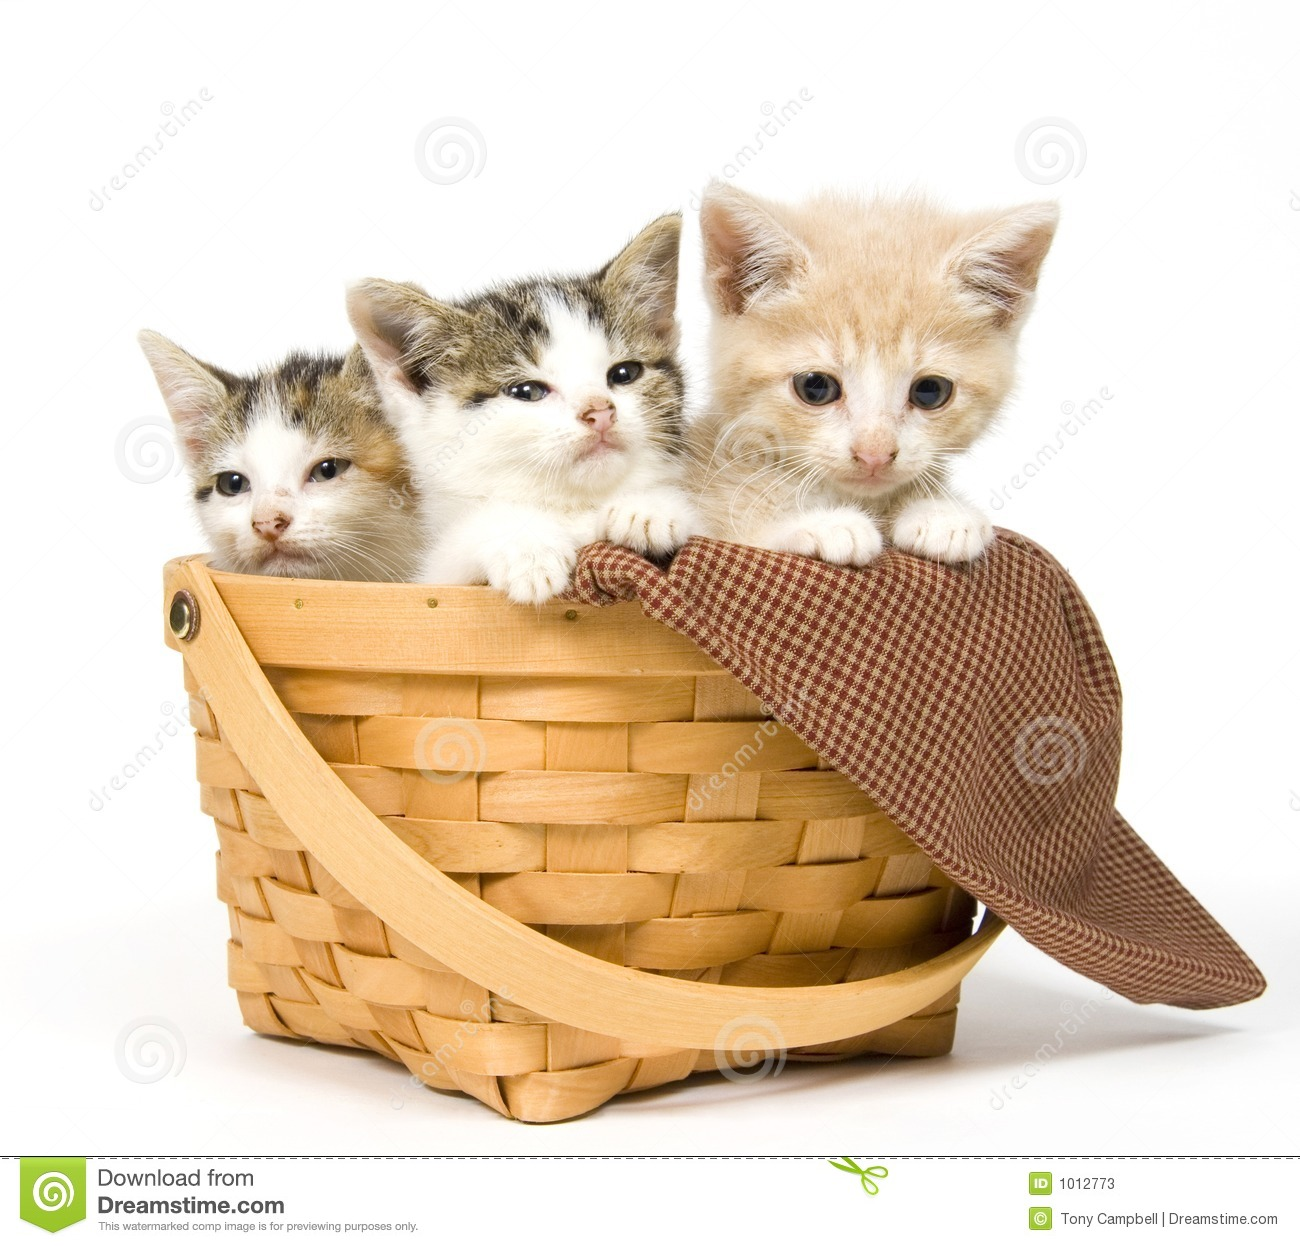 Three Kittens In A Basket Stock Photos - Image: 1012773